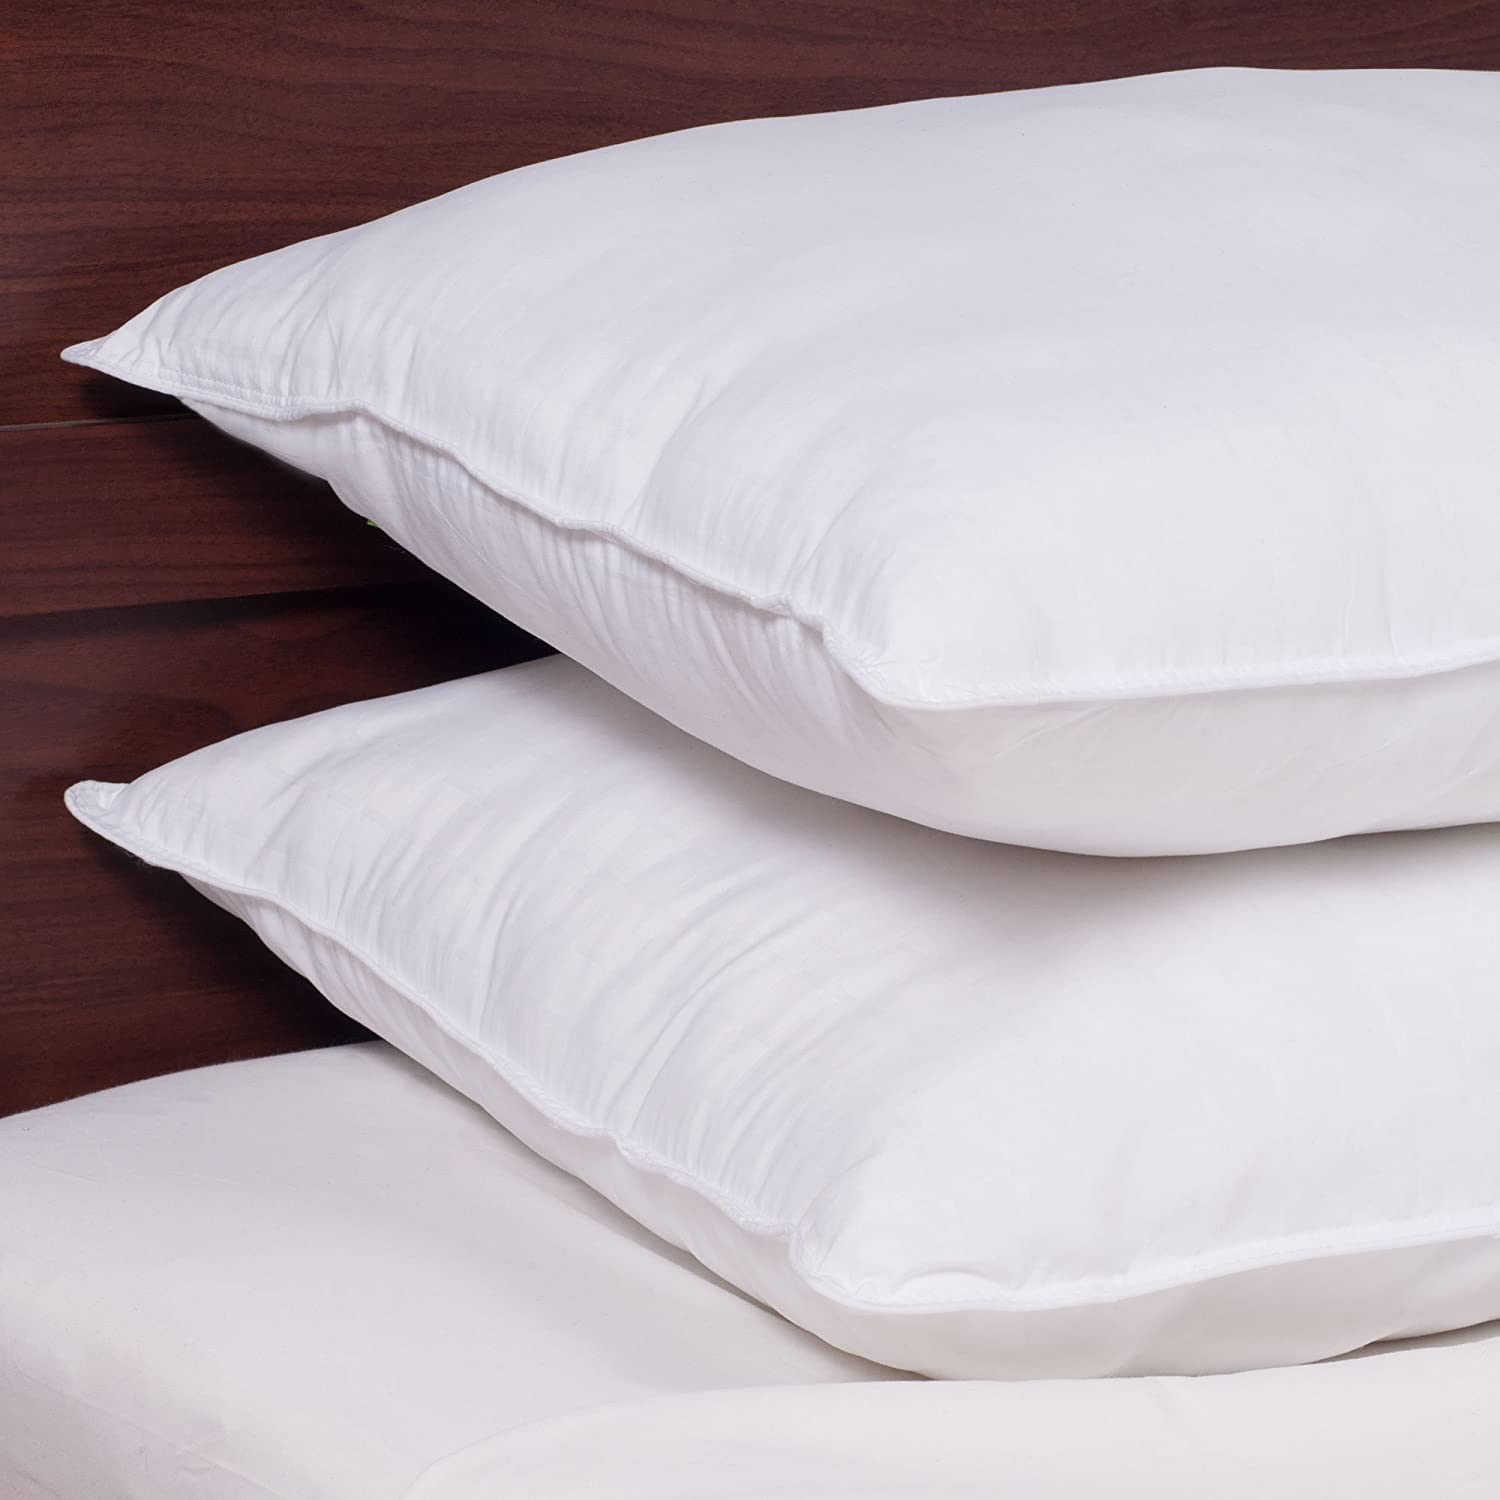 brighter anti products greenfirst mite down pillow alternative shannon hypoallergenic dust scott